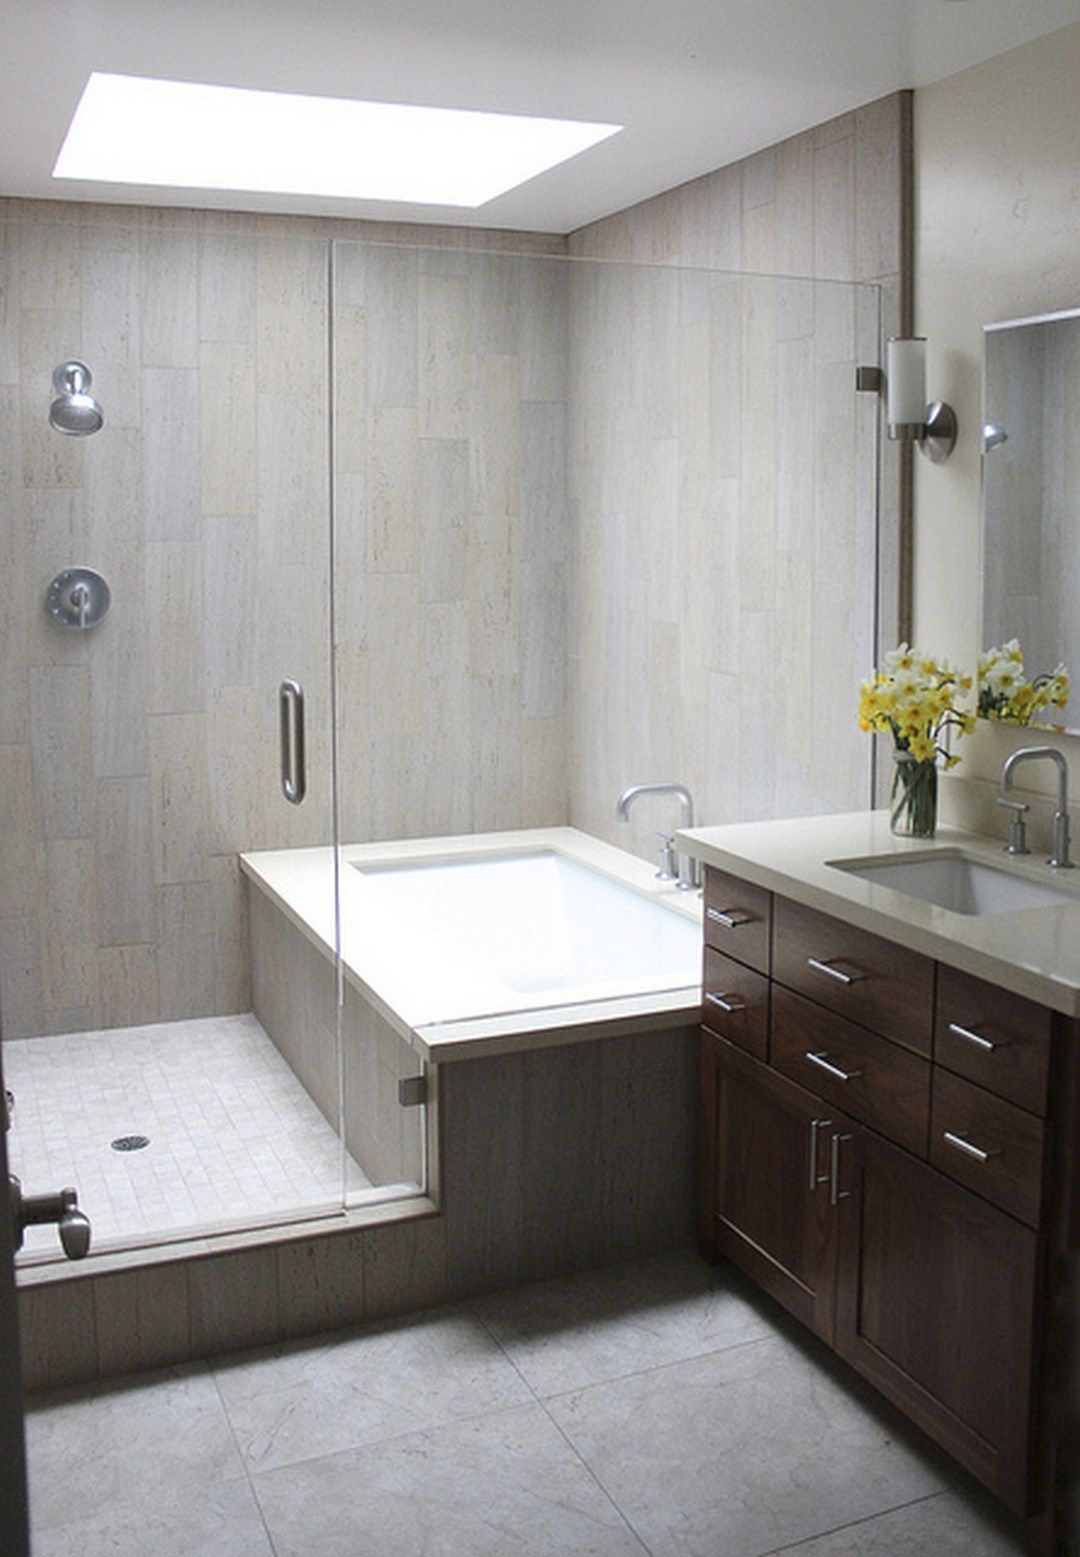 99 Small Master Bathroom Makeover Ideas On A Budget 65 Small Bathroom Remodel Bathroom Remodel Master Small Master Bathroom